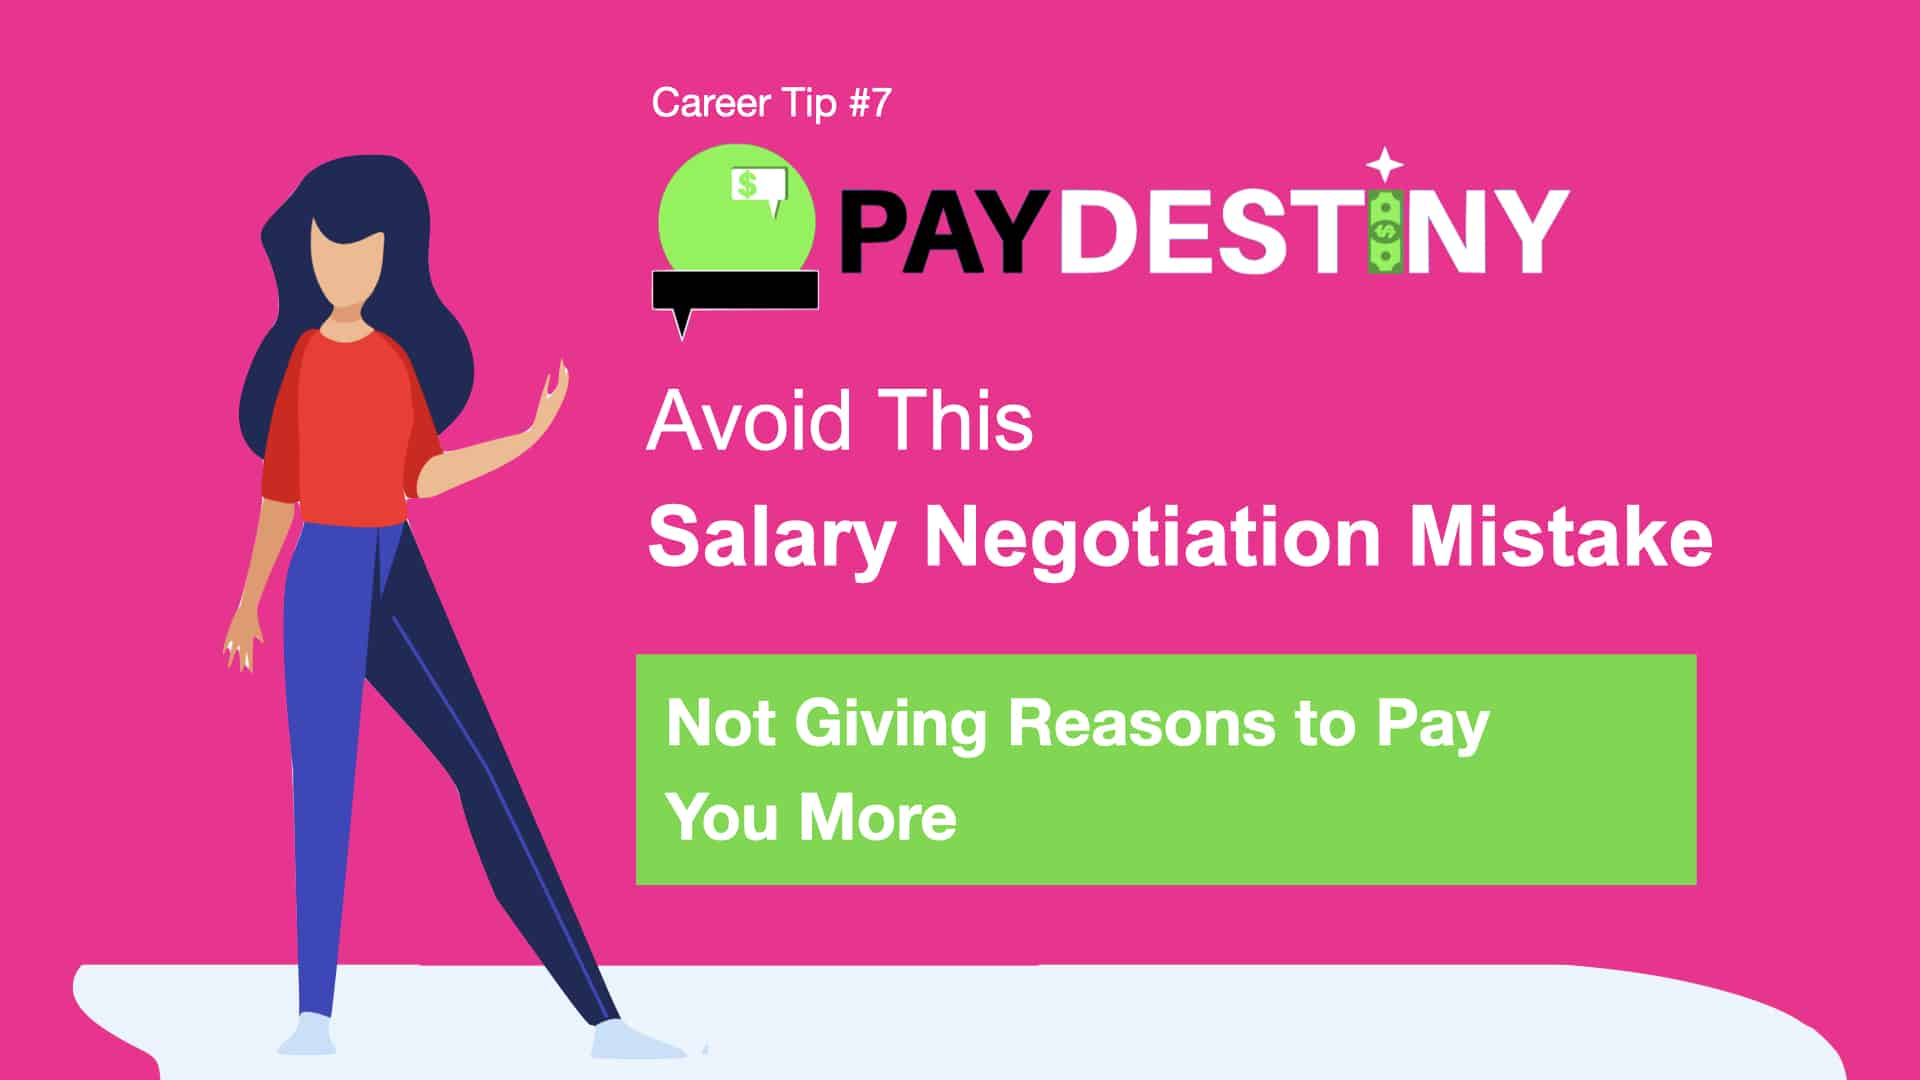 Salary Negotiation Mistake (Not Giving Reasons to Pay You More  )